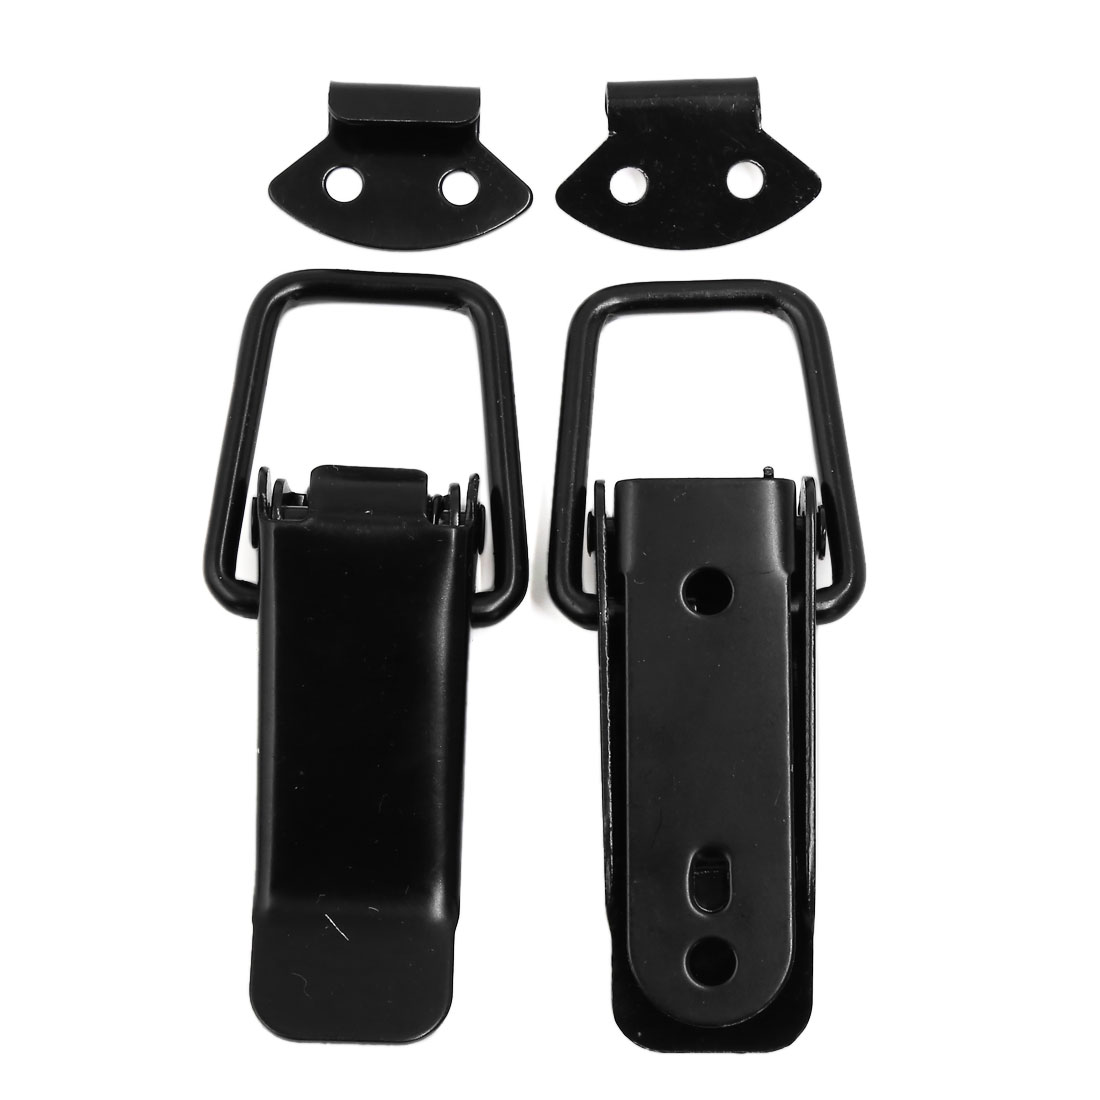 2 Pcs Black Case Box Chest Spring Loaded Stainless Steel Draw Lock Toggle Latch